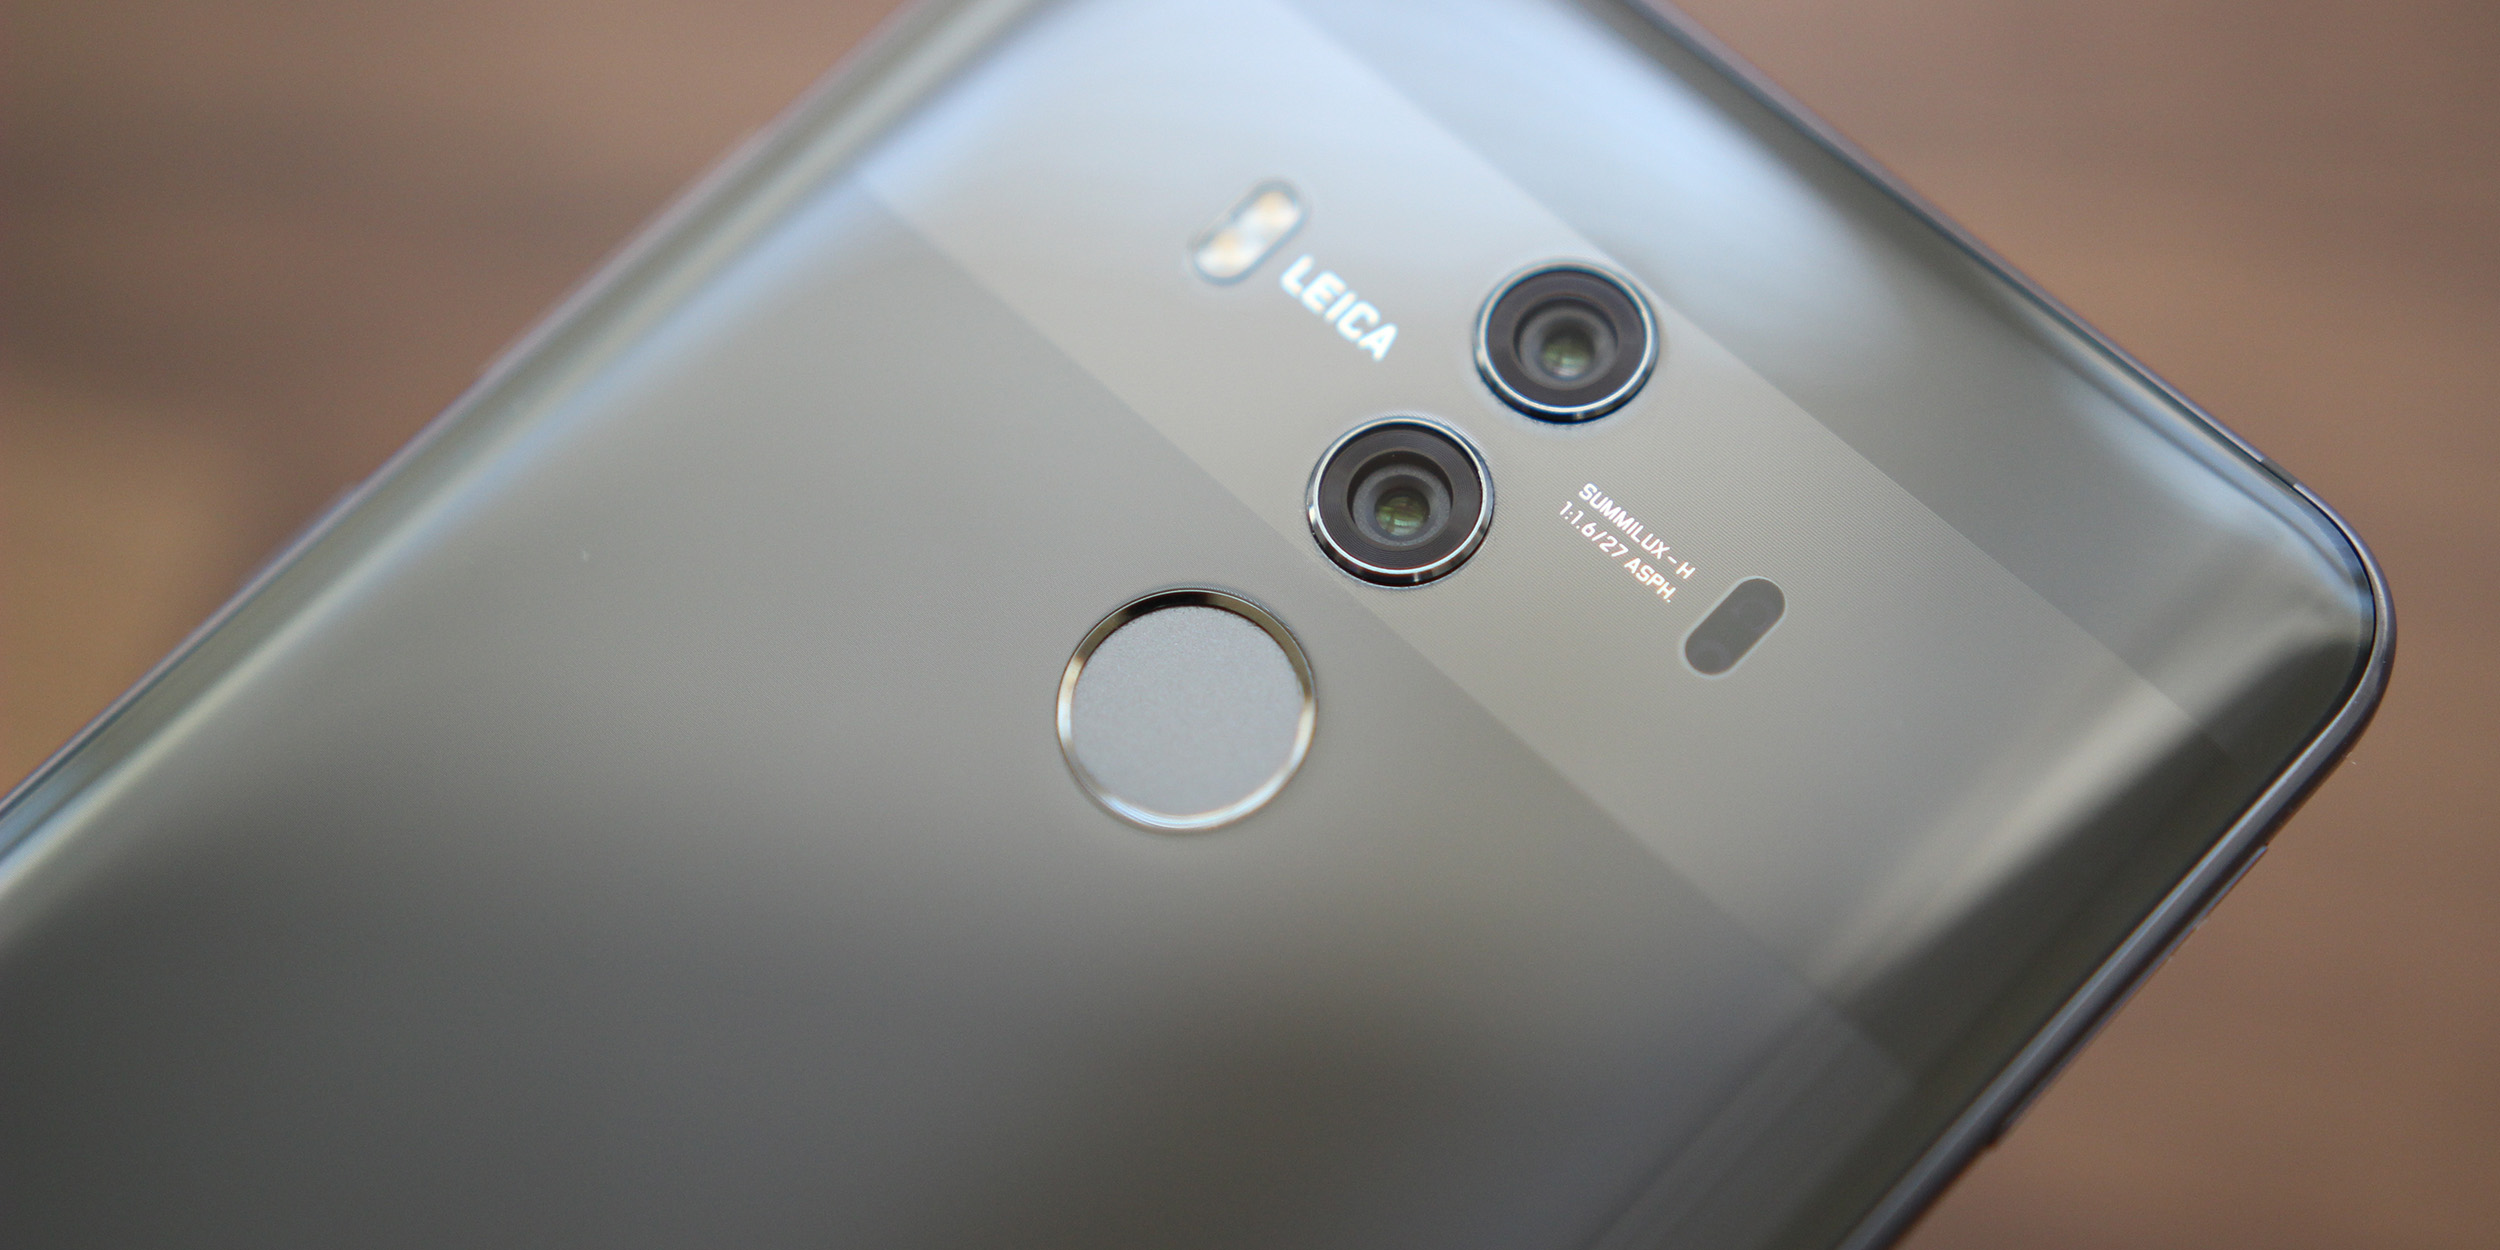 Huawei solicited 100+ fake Mate 10 Pro reviews on Best Buy